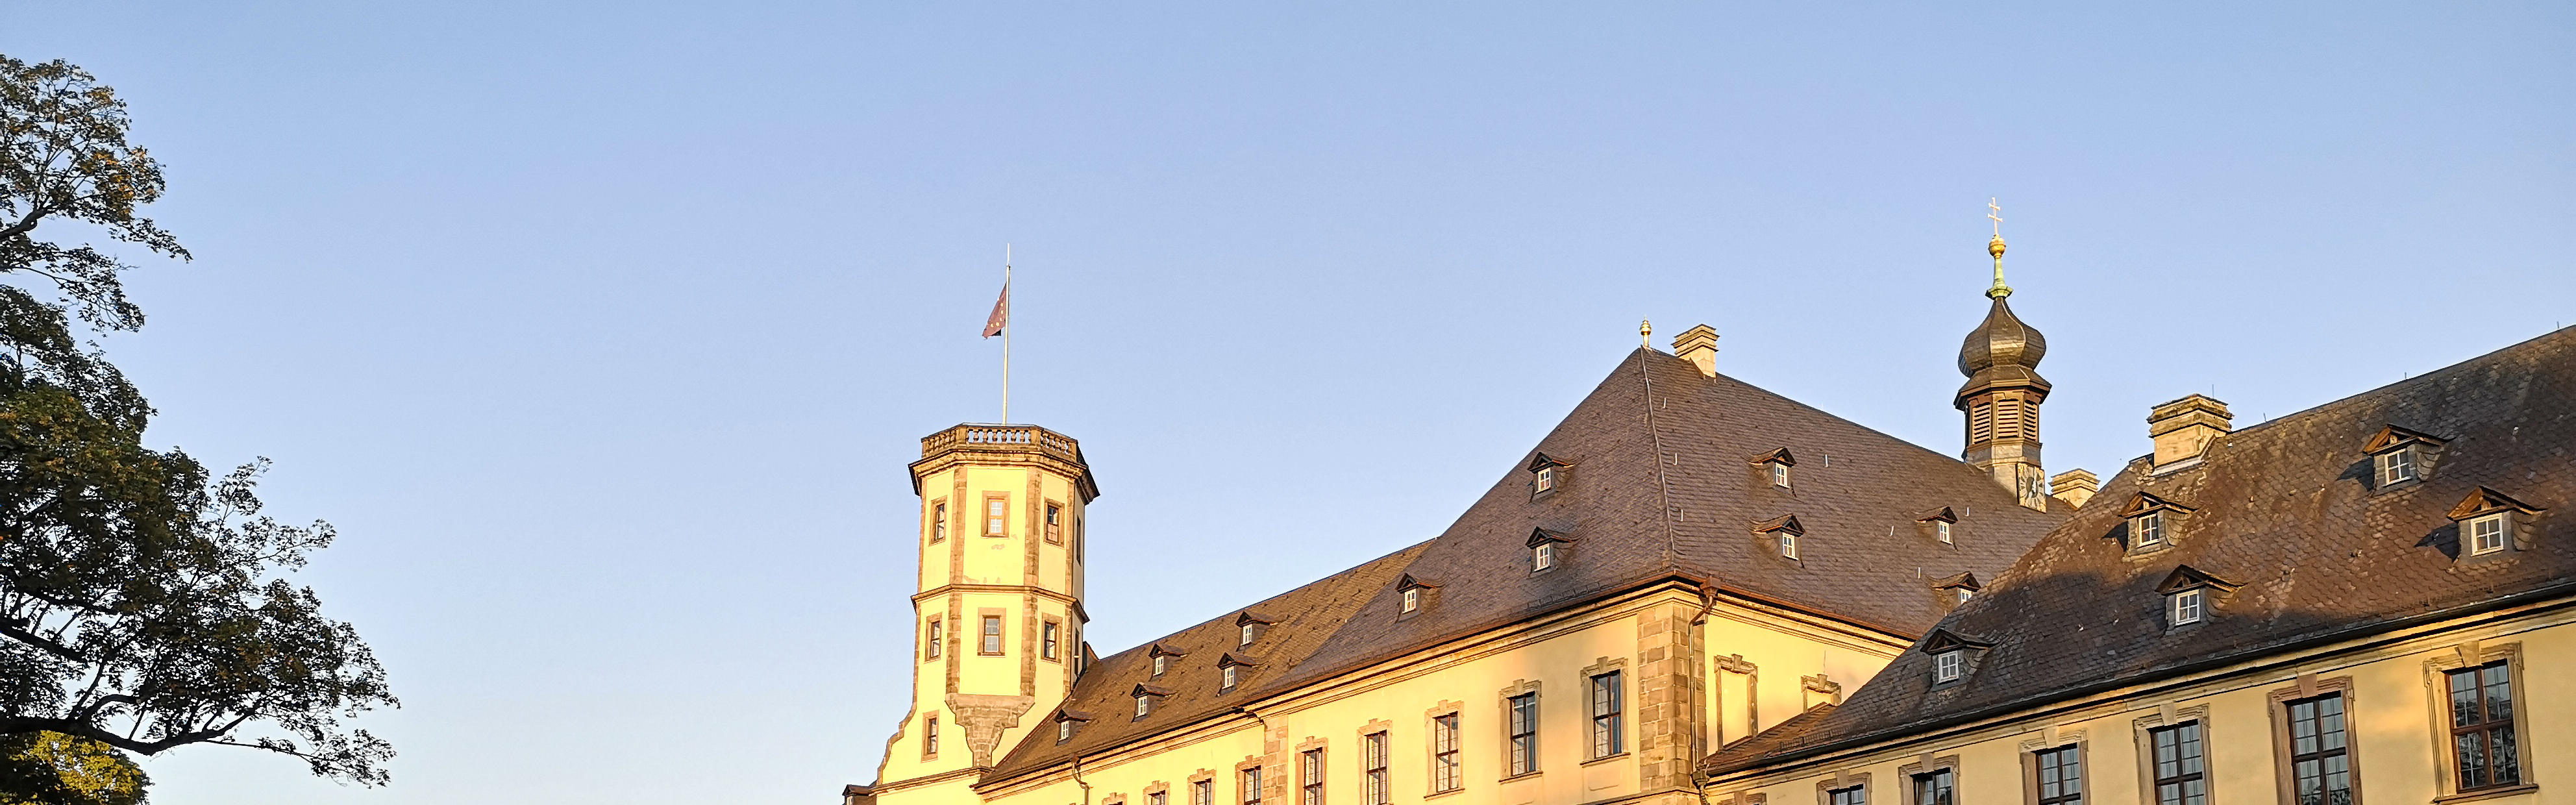 View of the town palace in Fulda